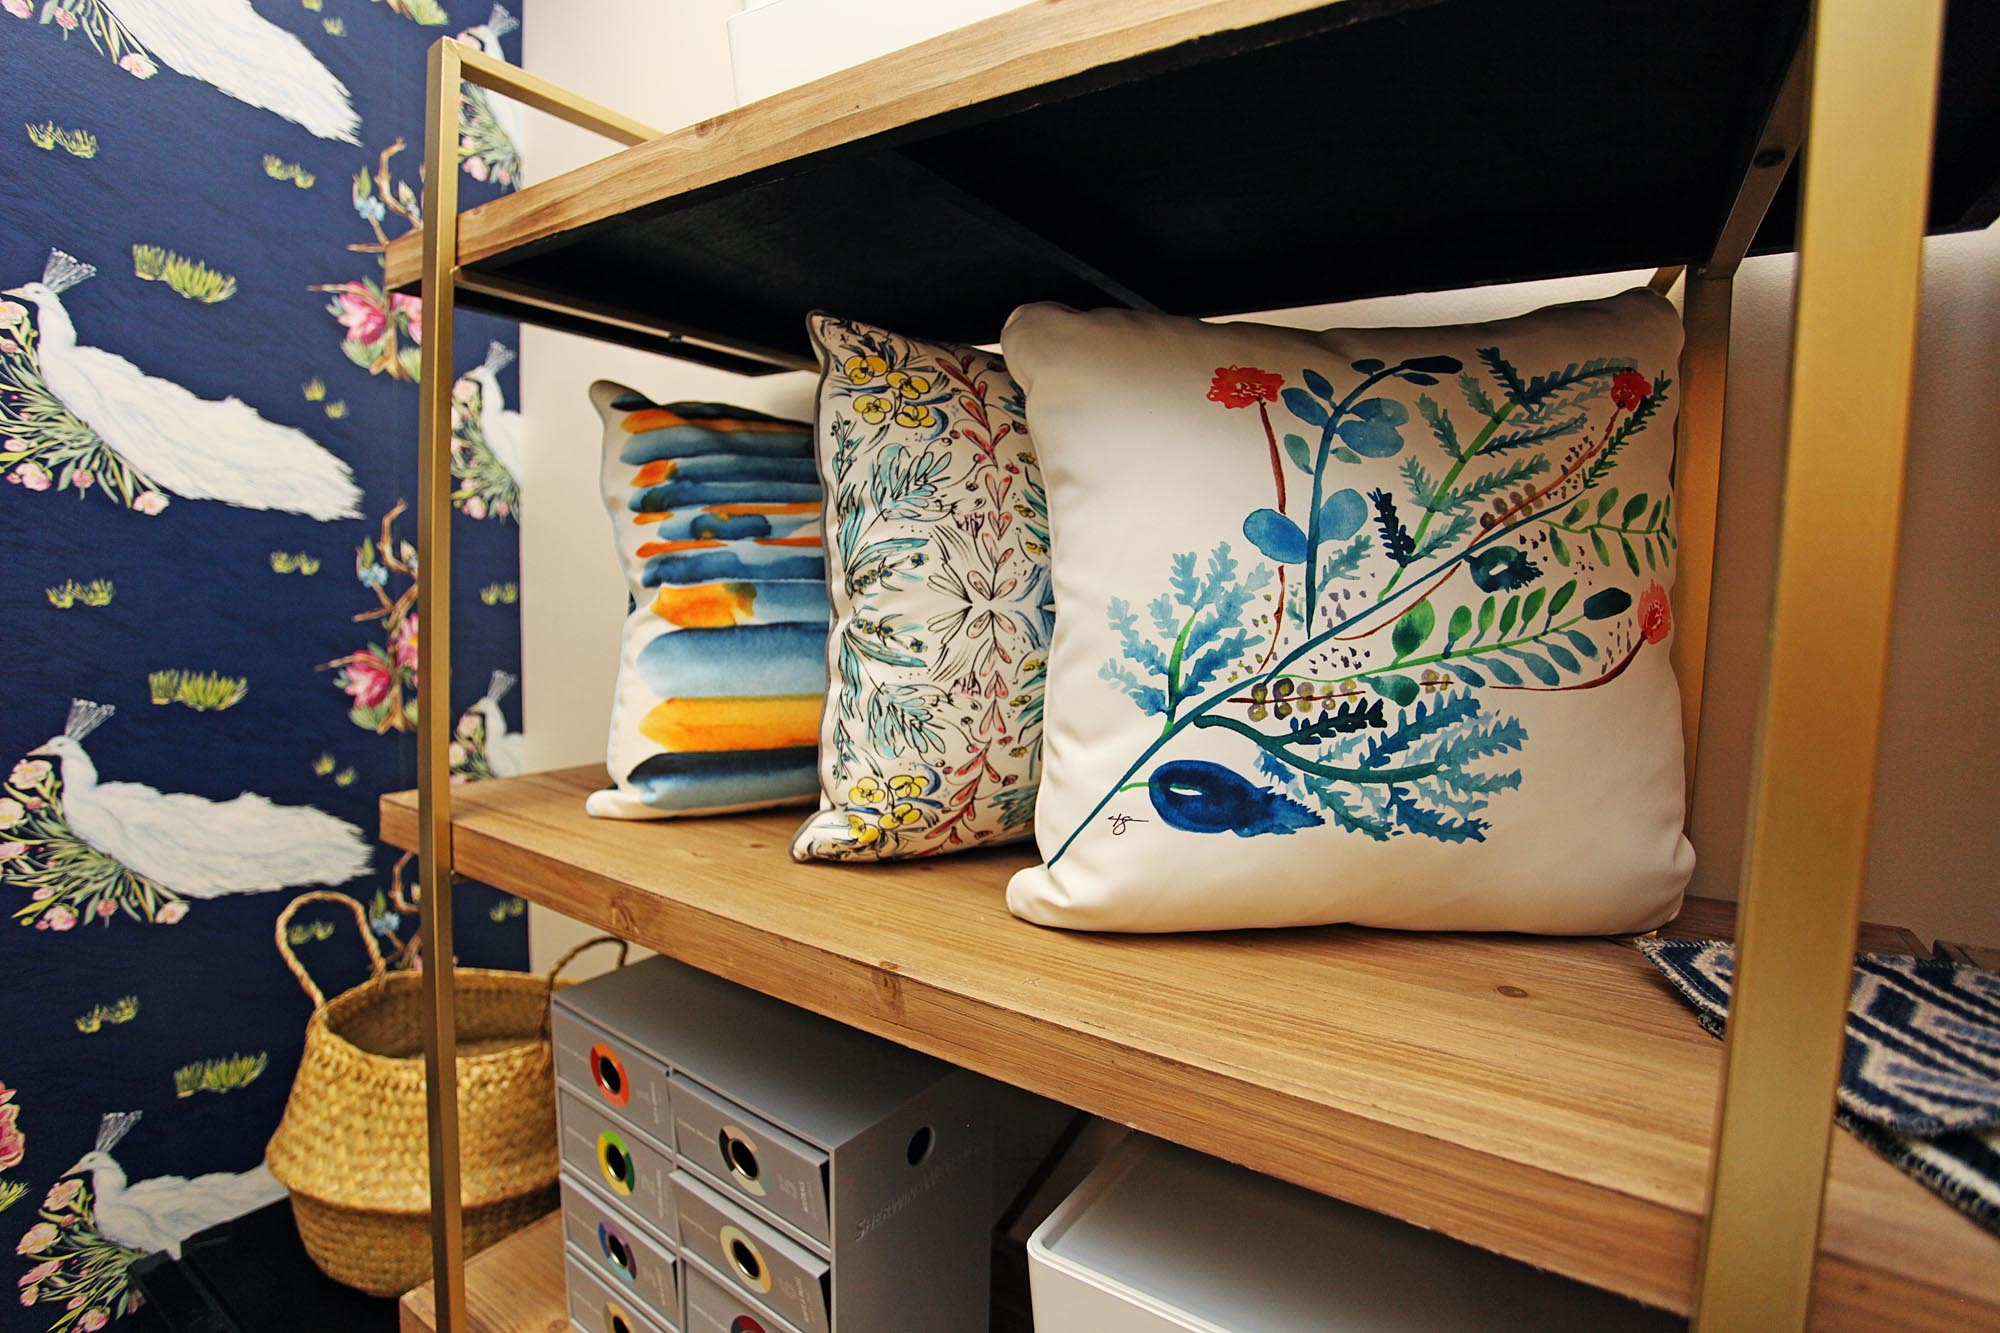 Spacious cabinet with three pillows